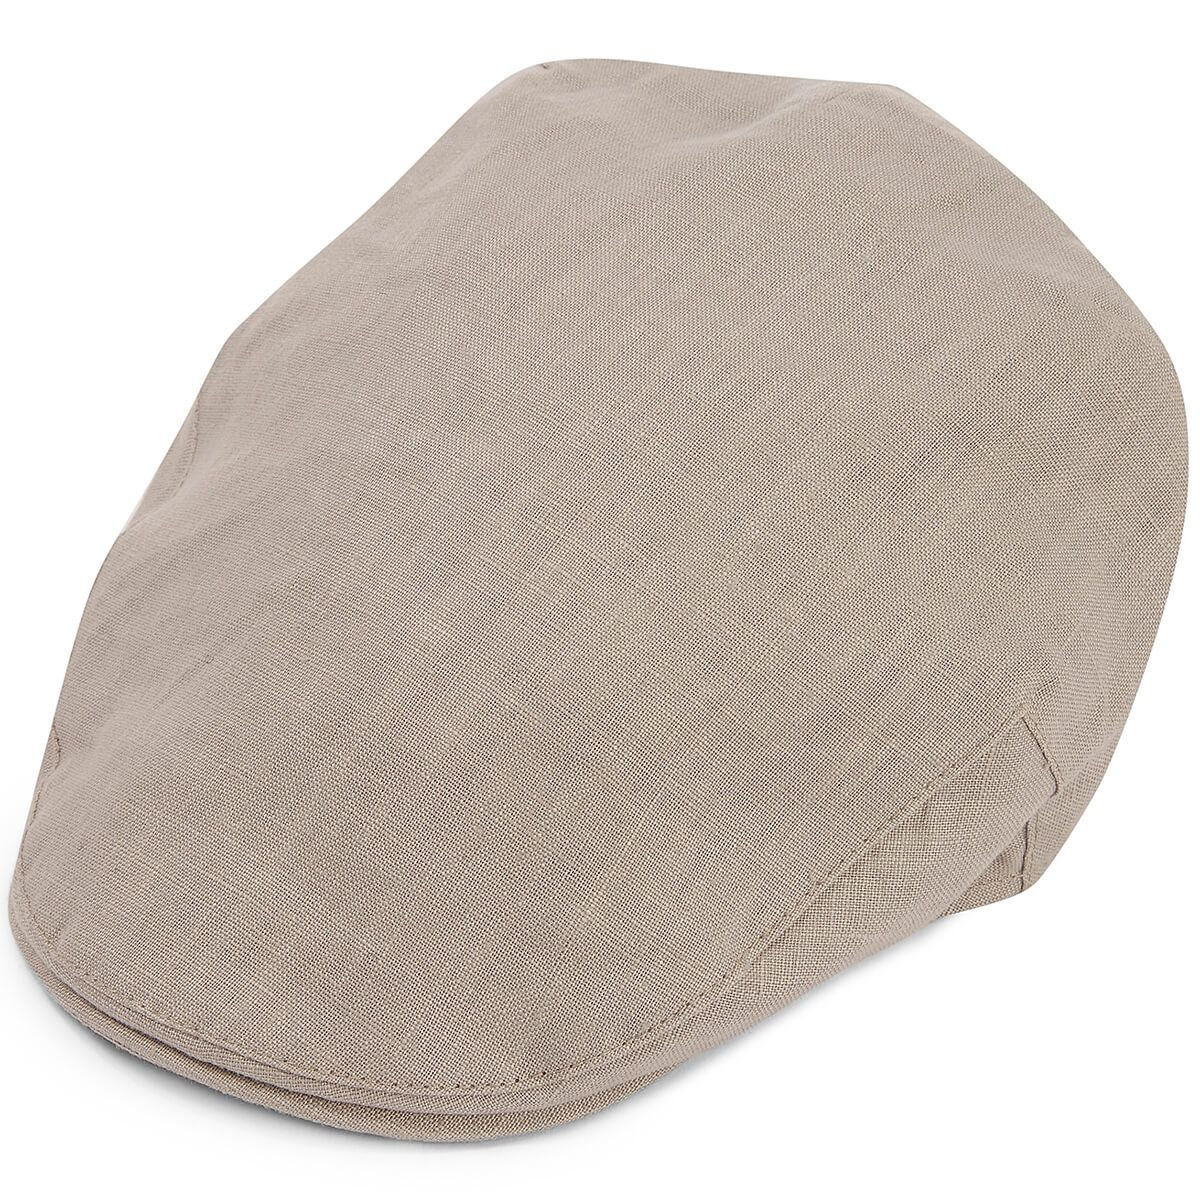 Balmoral Linen Flat Cap - Cloud Grey